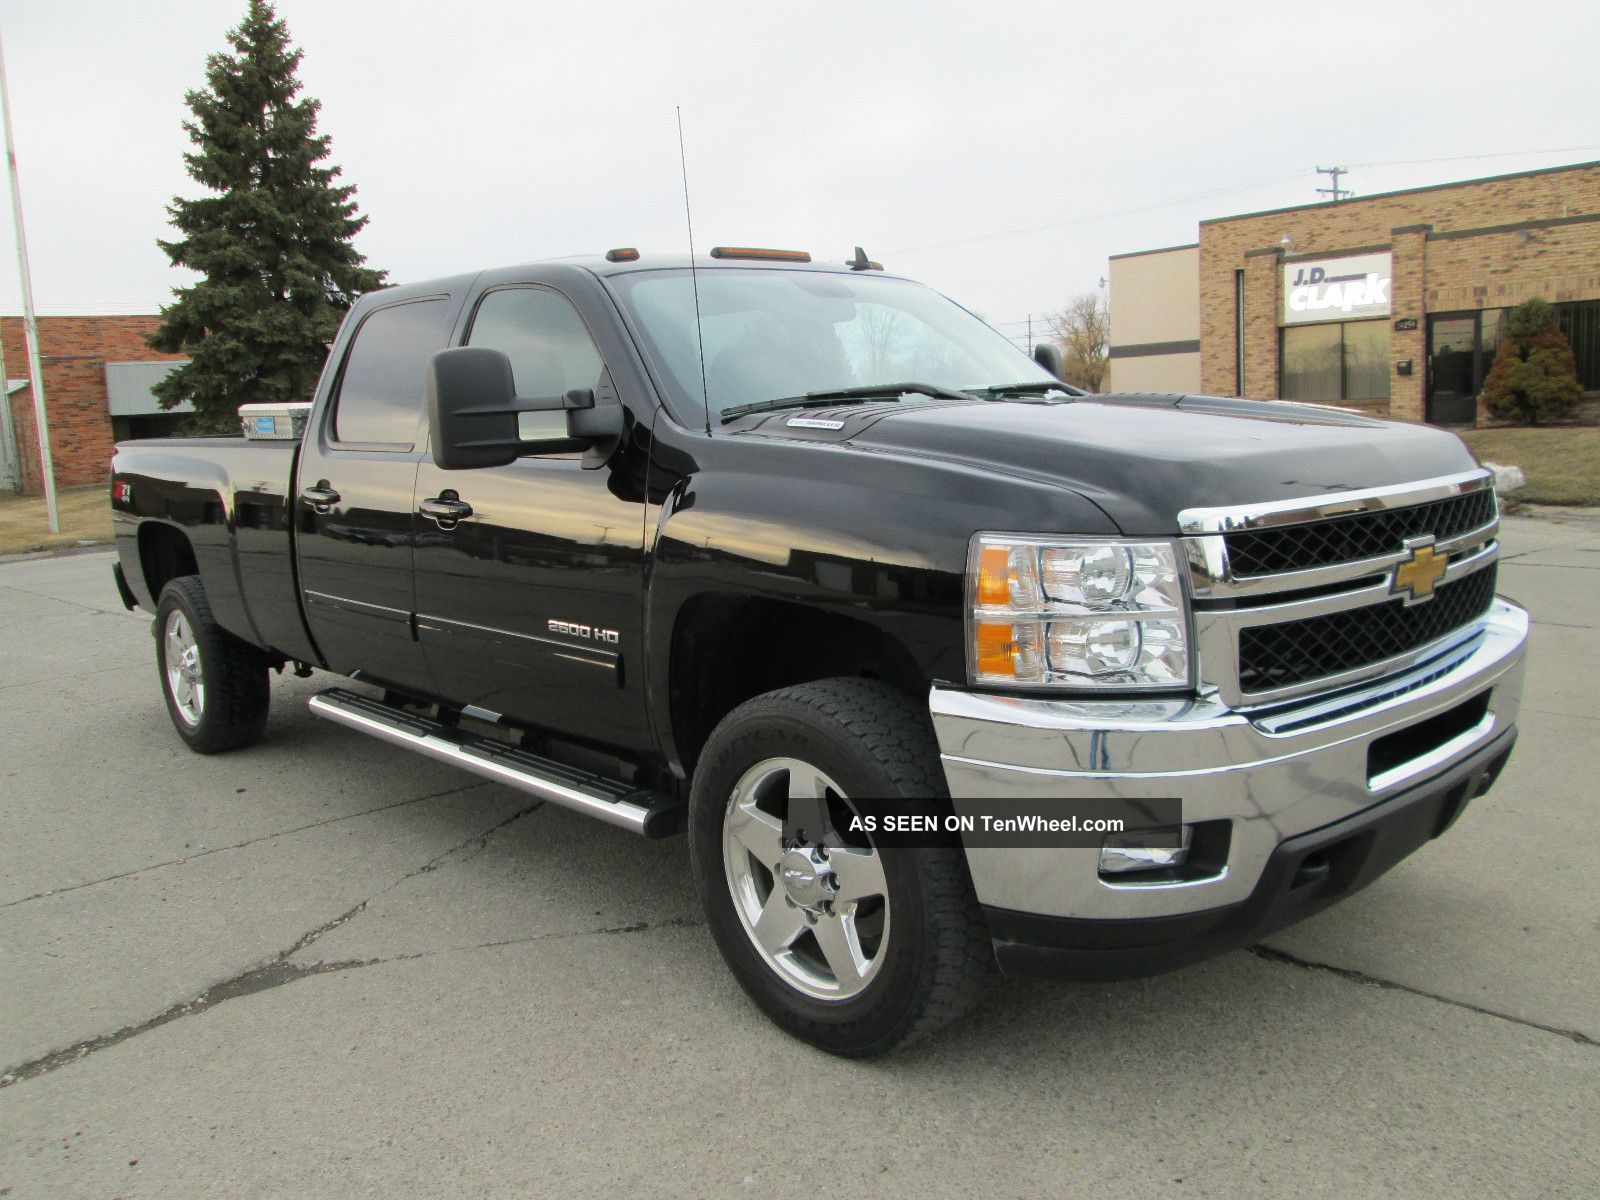 2011 chevrolet silverado 2500 ltz crew cab long box 4x4. Black Bedroom Furniture Sets. Home Design Ideas